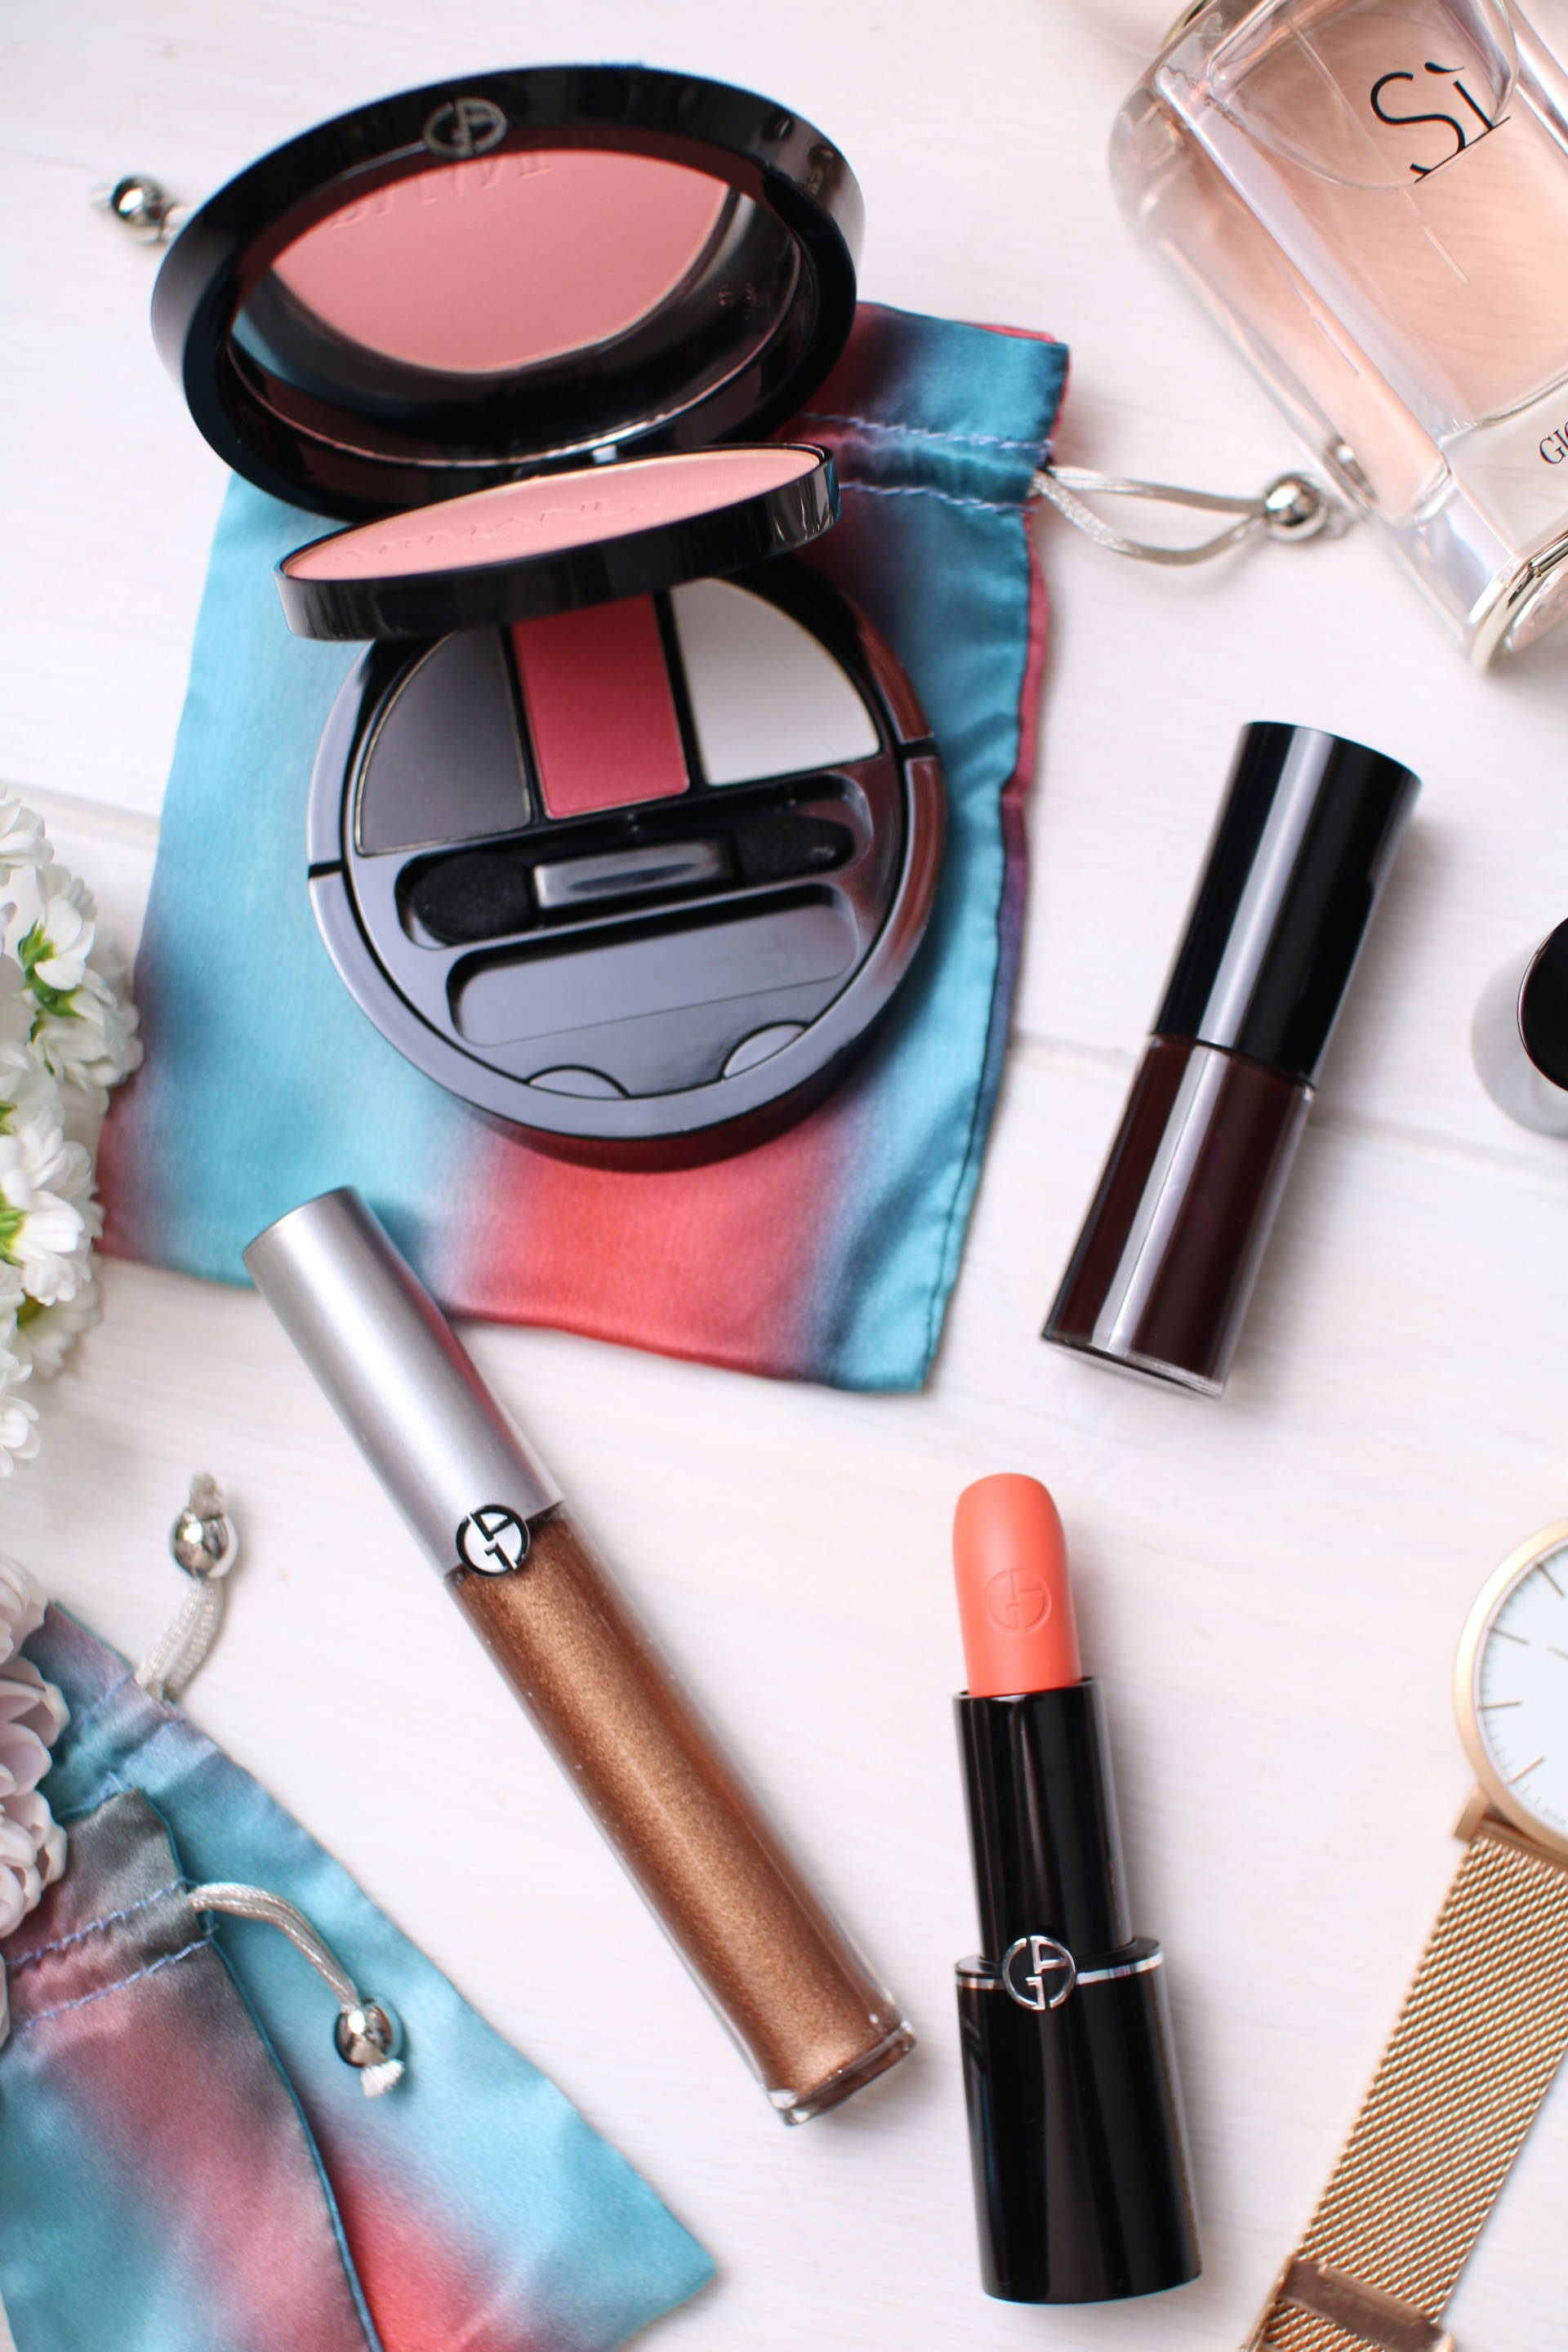 Buy Armani giorgio eclipse summer makeup collection pictures trends